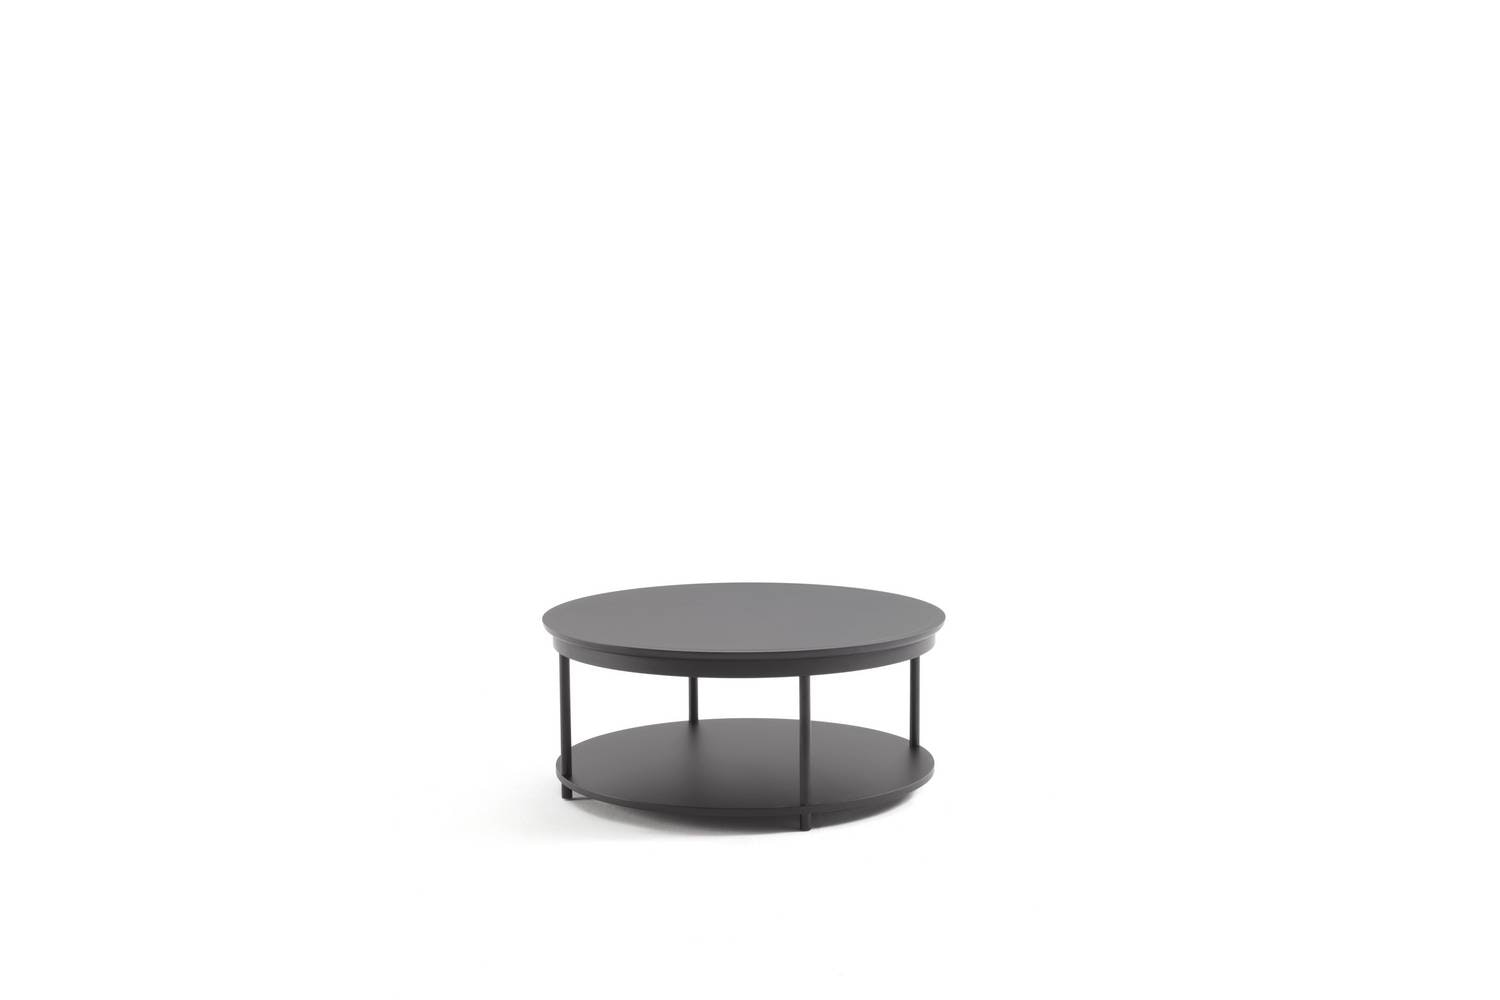 Plateau Coffee Table by Opera Design for Porada